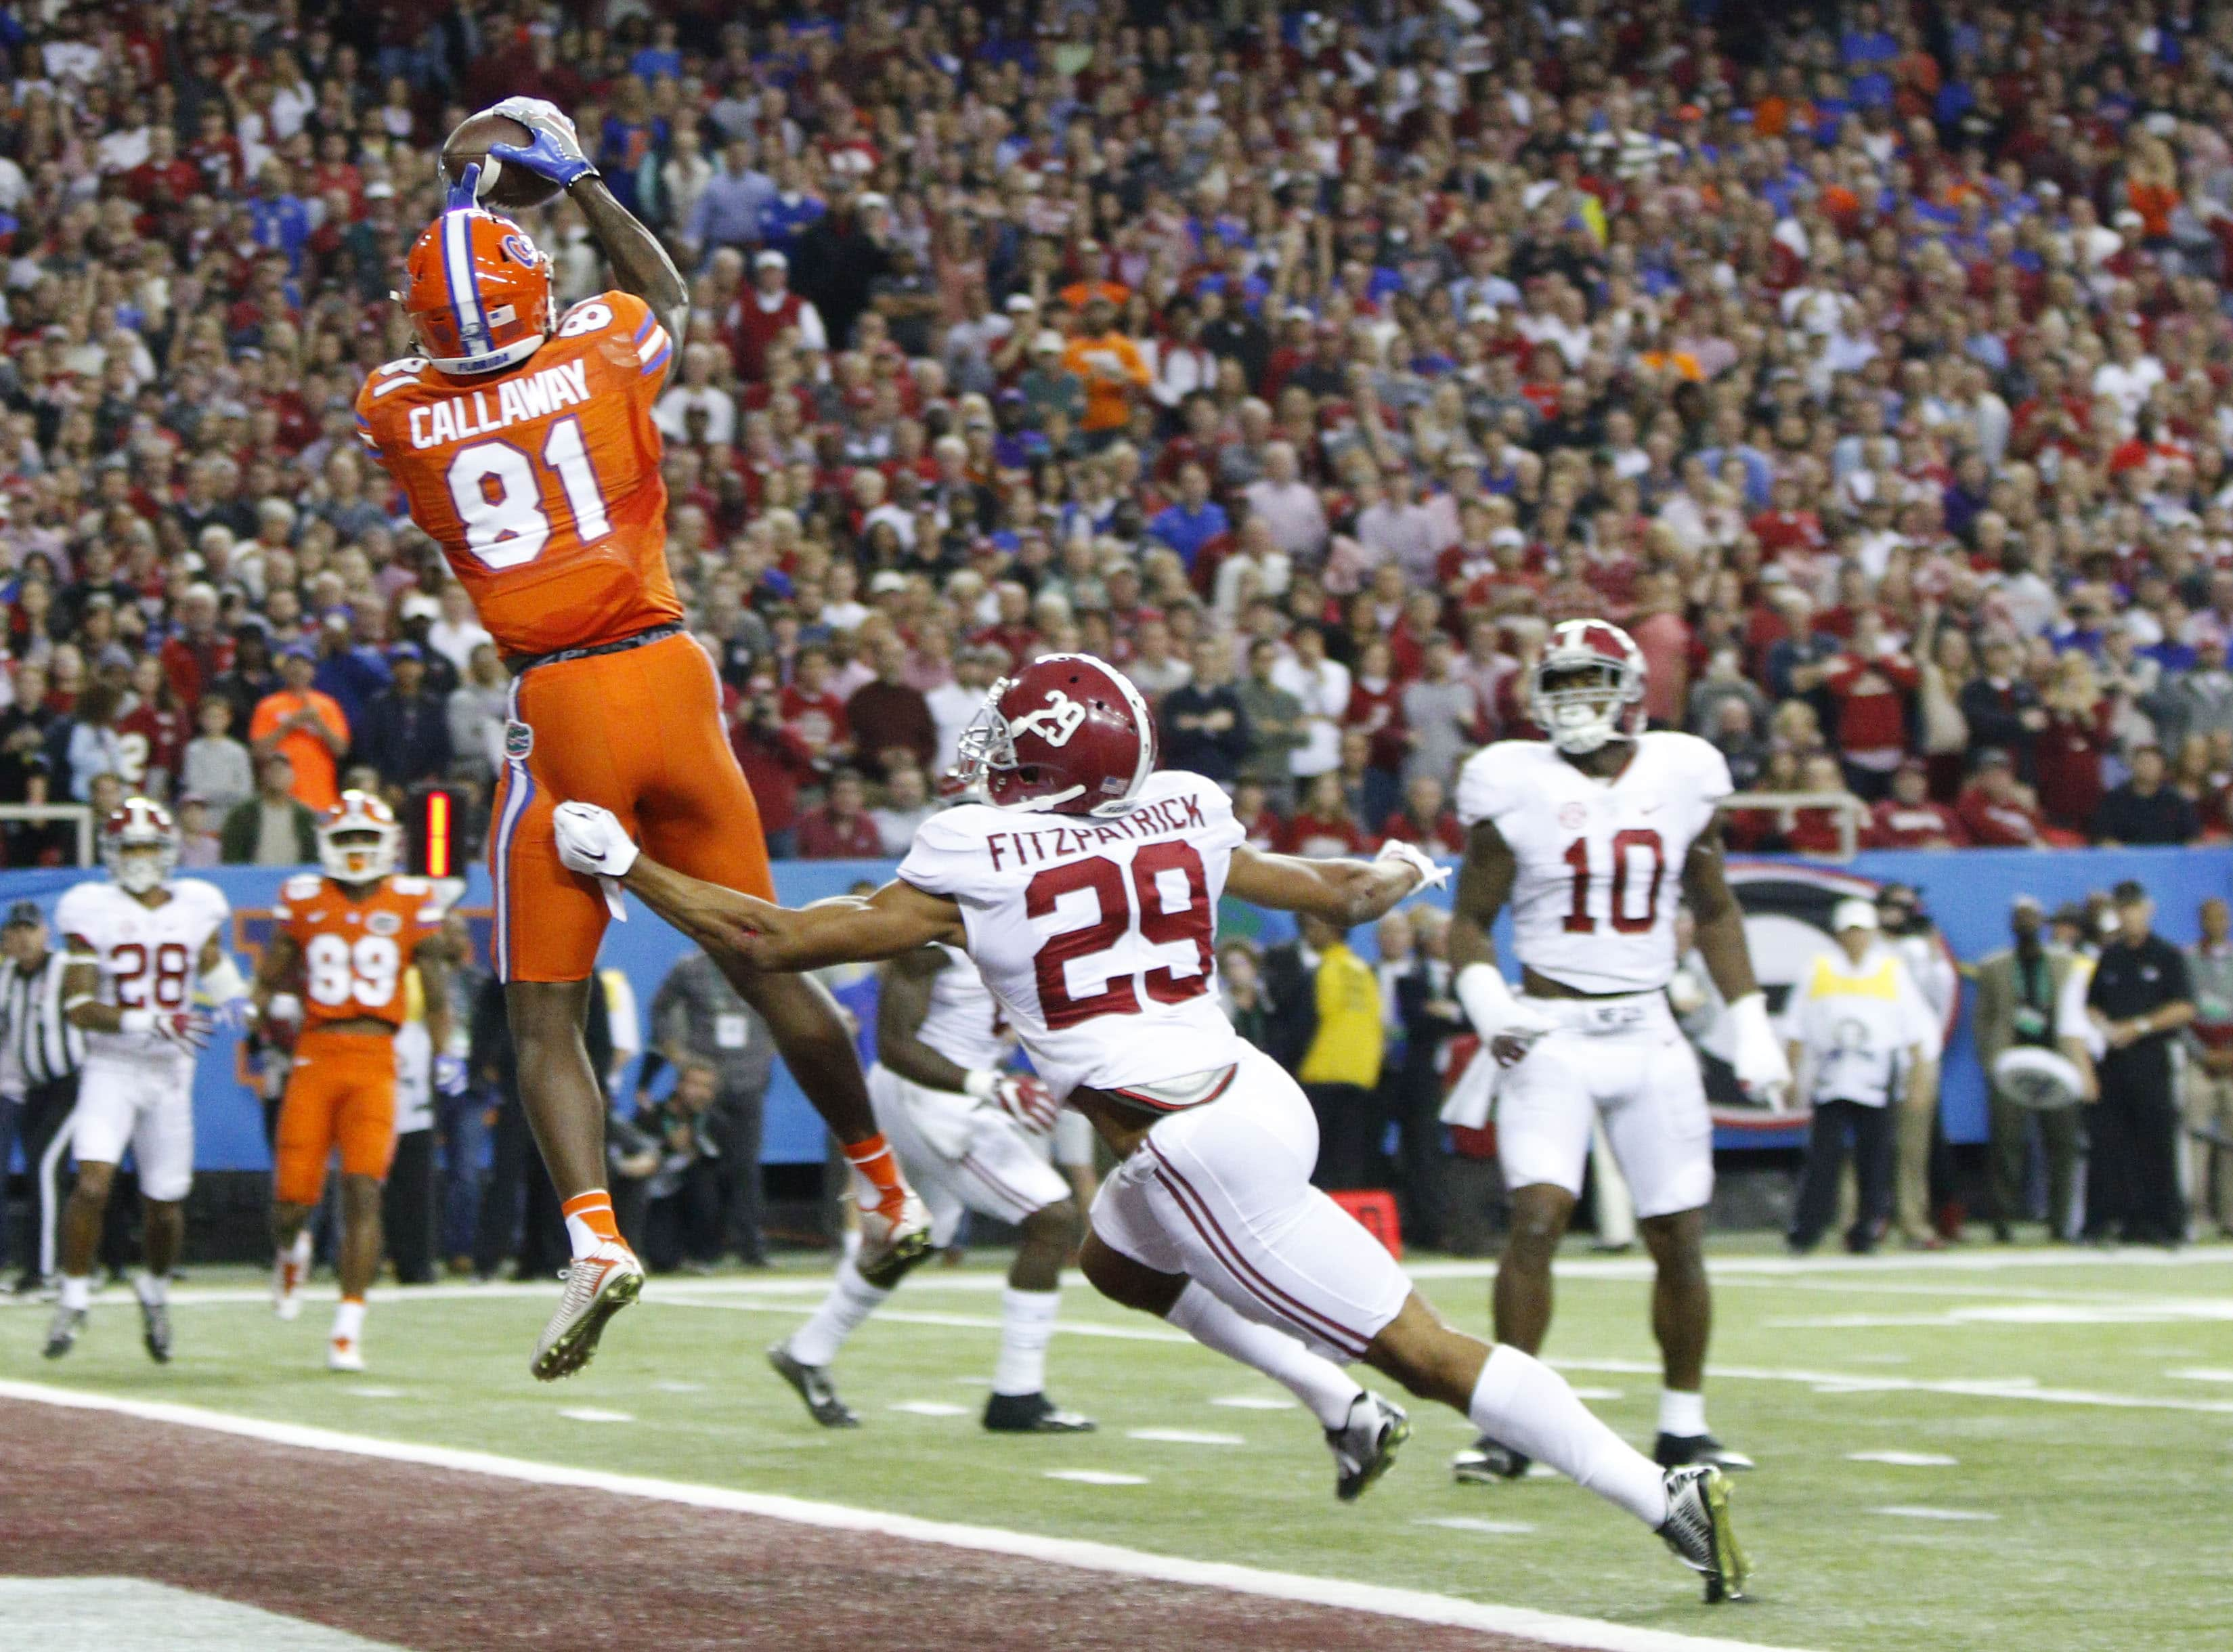 Antonio Callaway, 6 other Gators suspended for MI game